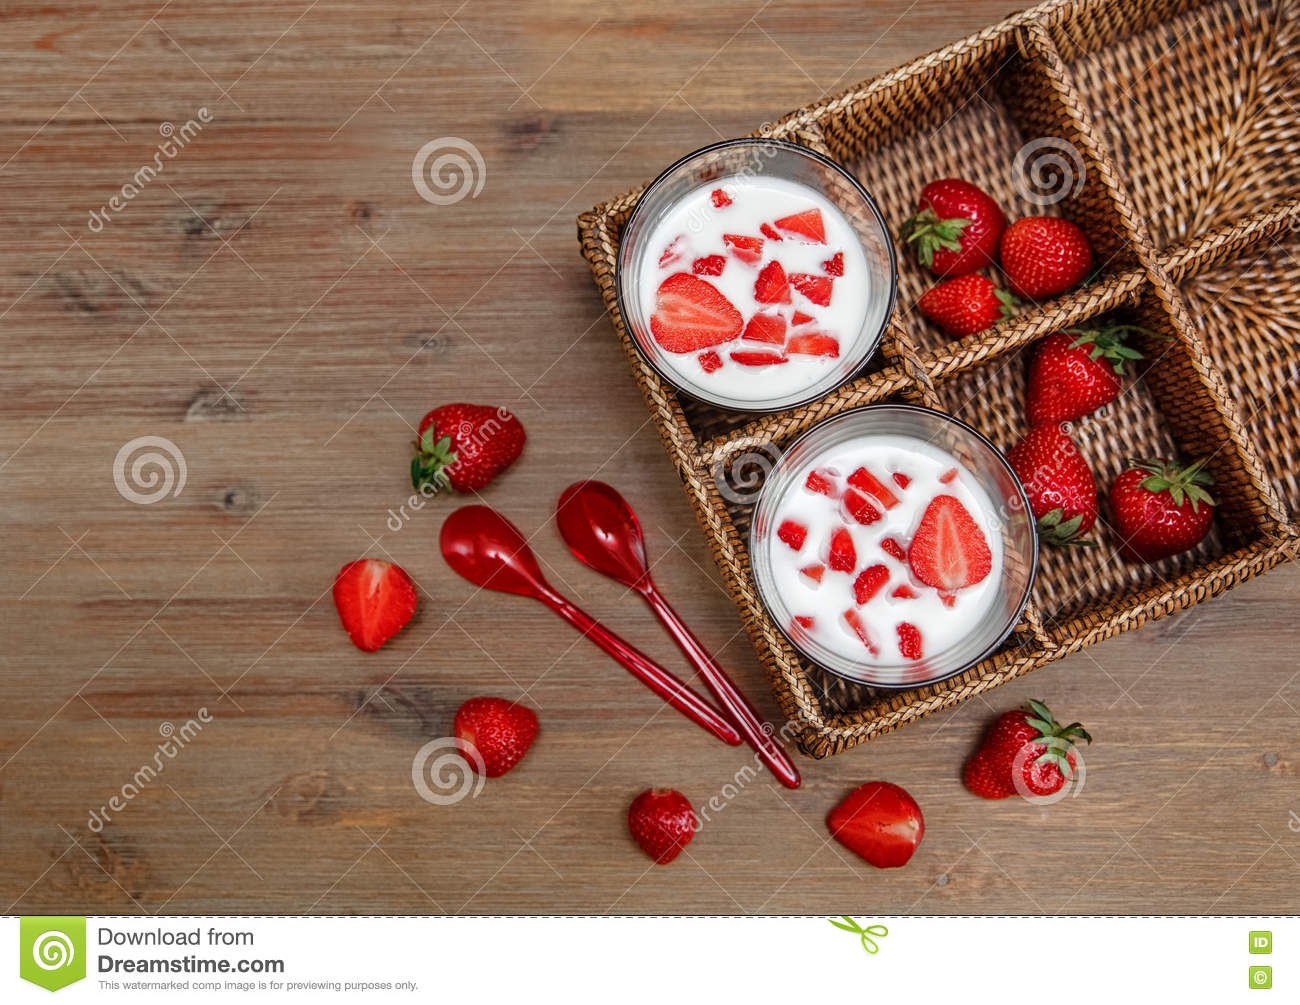 Two Glasses of Yogurt,Red Fresh Strawberries in the Rattan Box with Plastic Spoons on the Wooden Table.Breakfast Organic Healthy